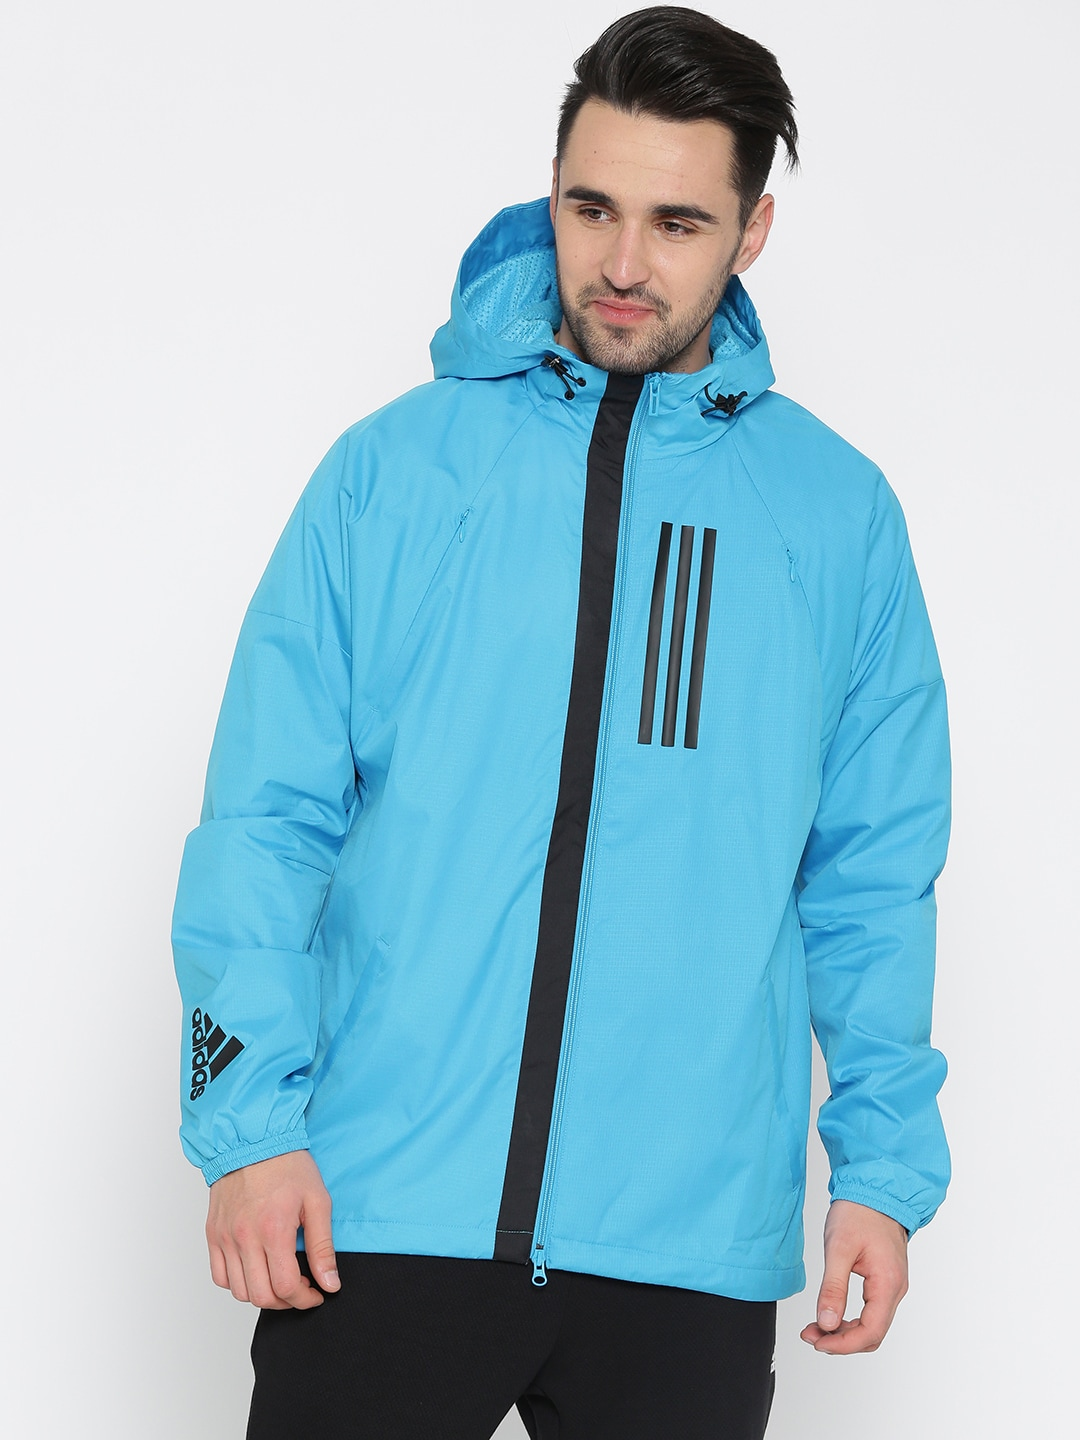 32ba8925ceeb Adidas Jacket - Buy Adidas Jackets for Men